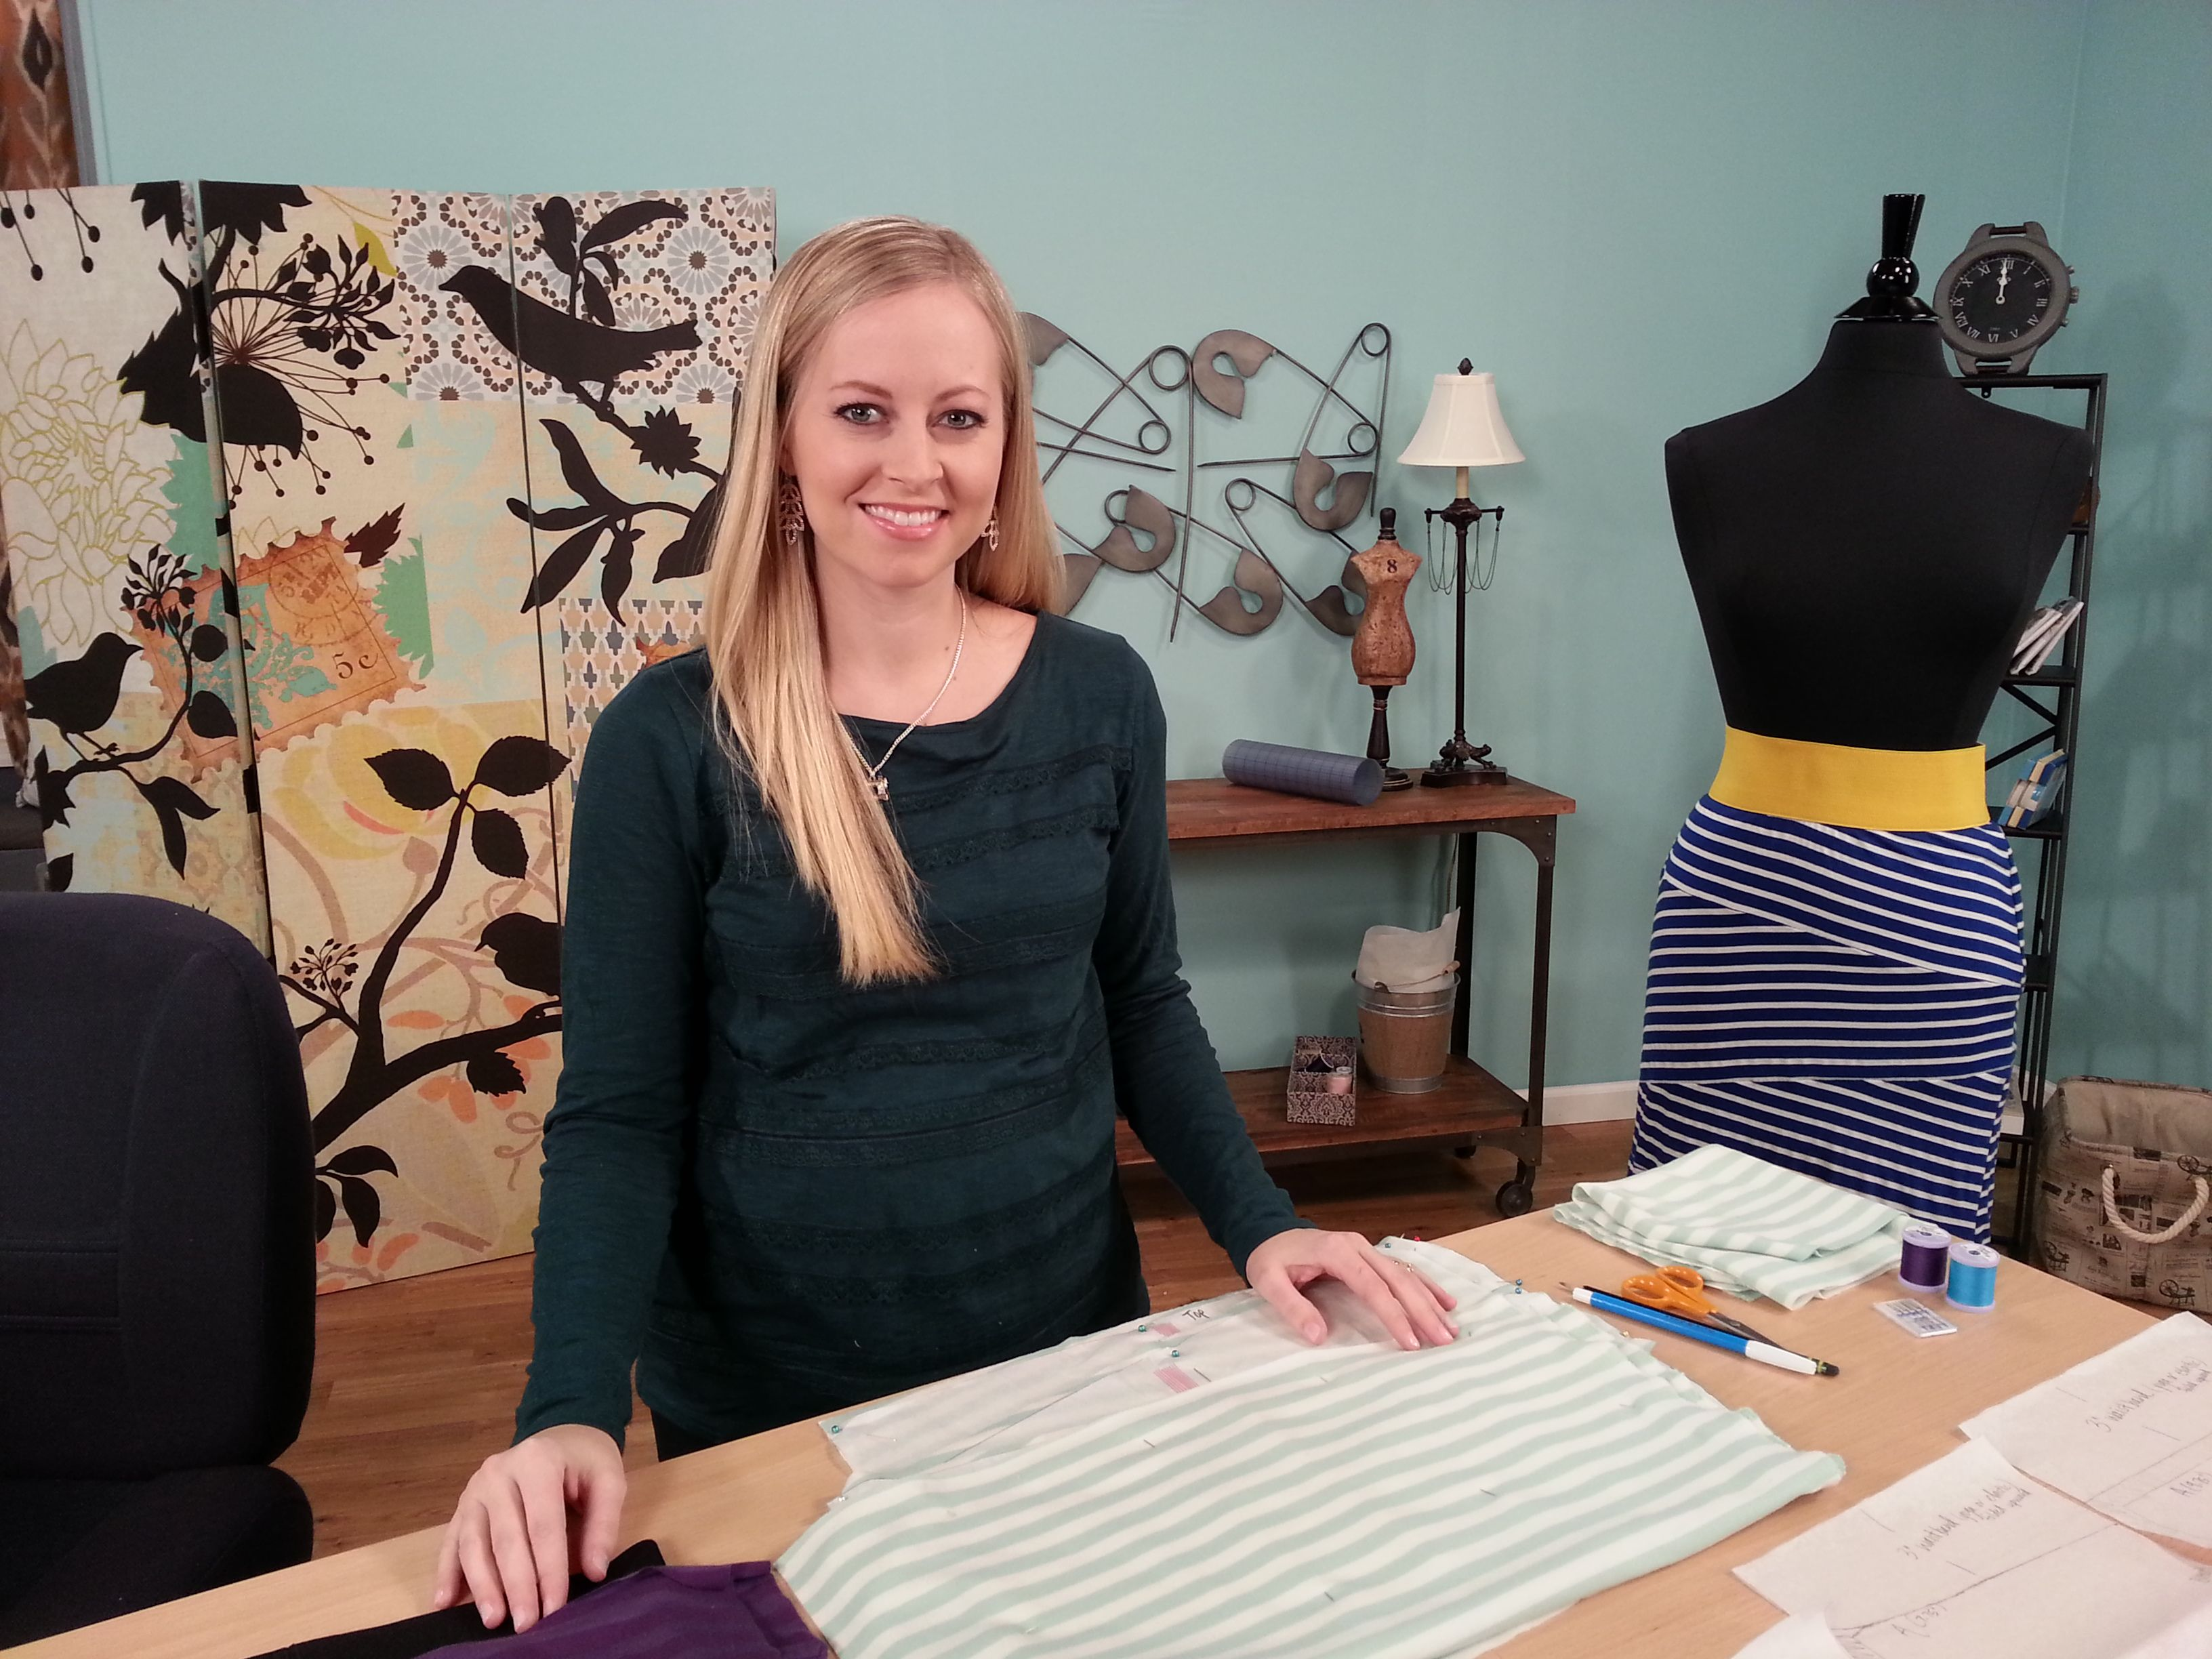 Rachel Howard on the set of It's Sew Easy  View episodes here: www